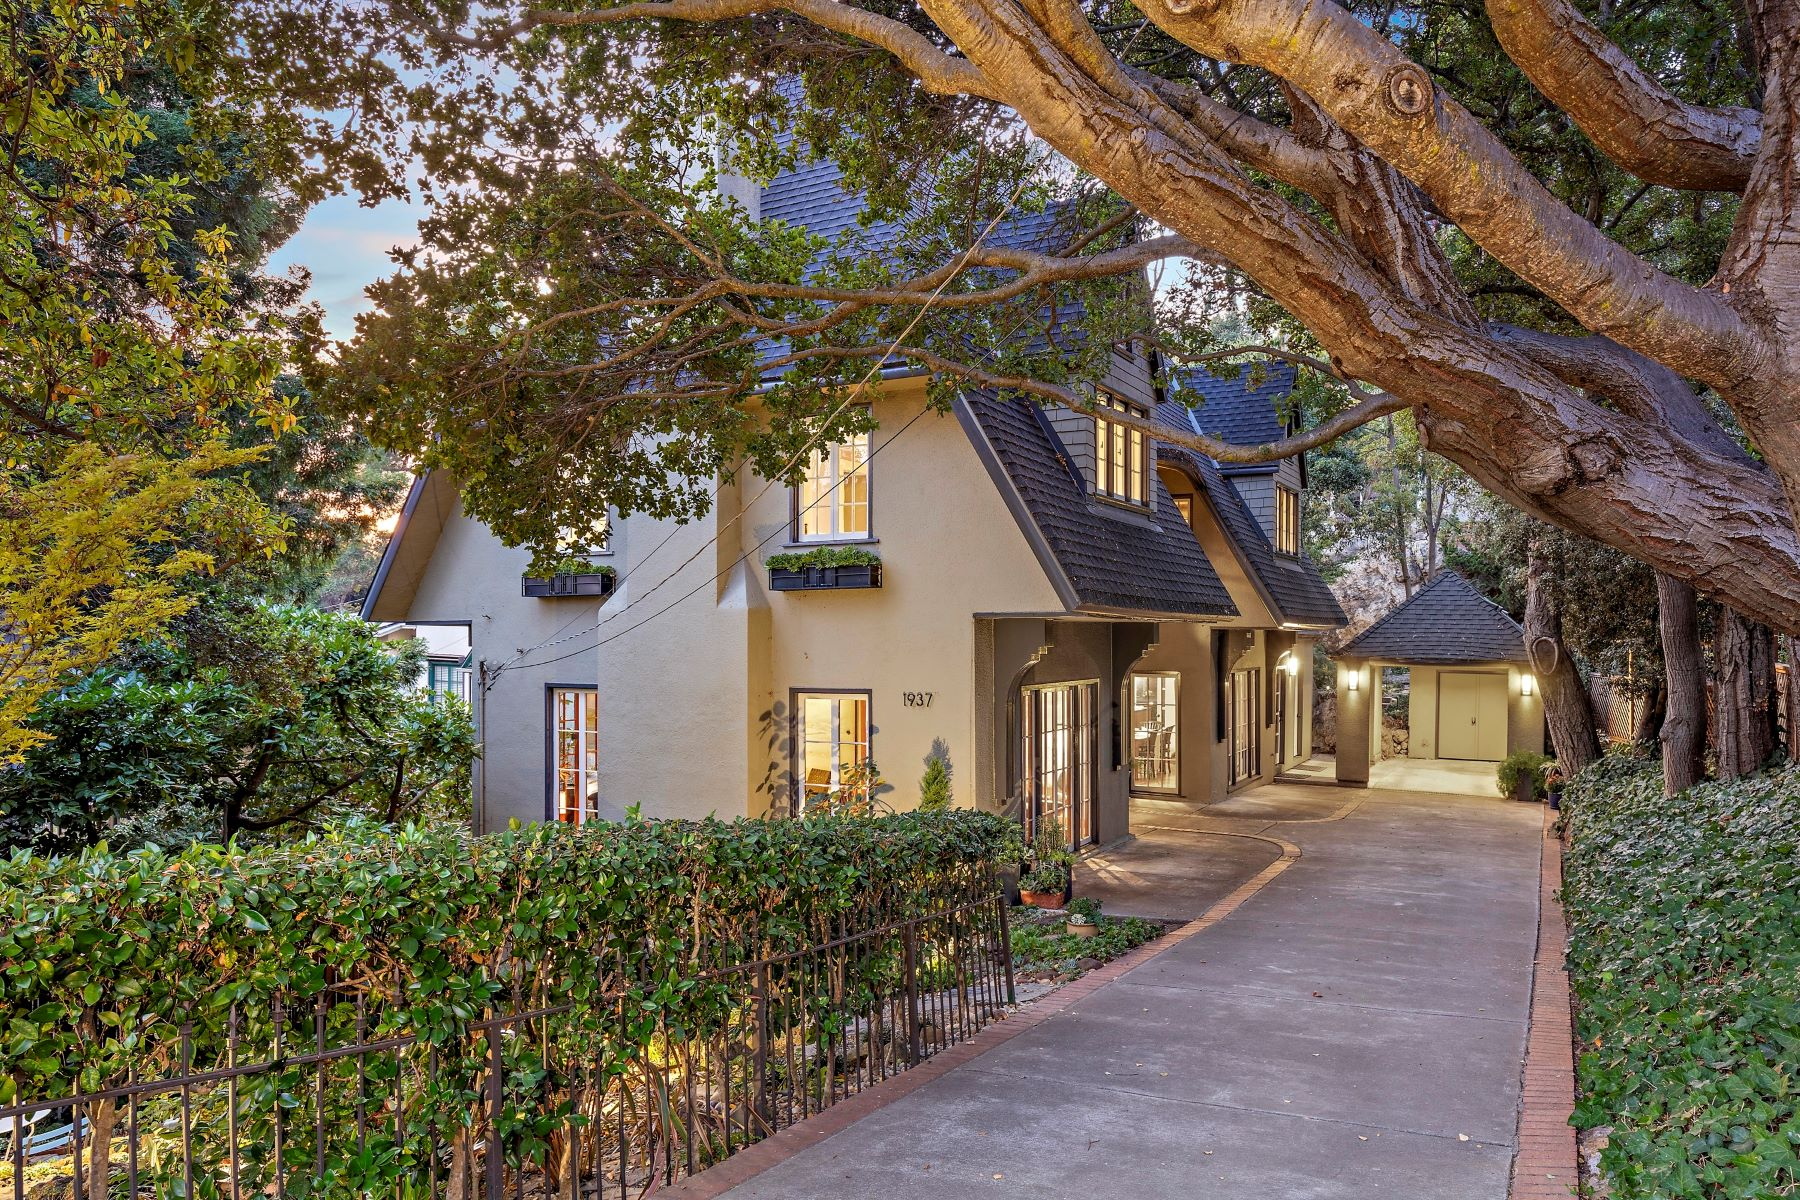 Single Family Homes for Sale at Enchanted Thousand Oaks Retreat 1937 Capistrano Avenue Berkeley, California 94707 United States